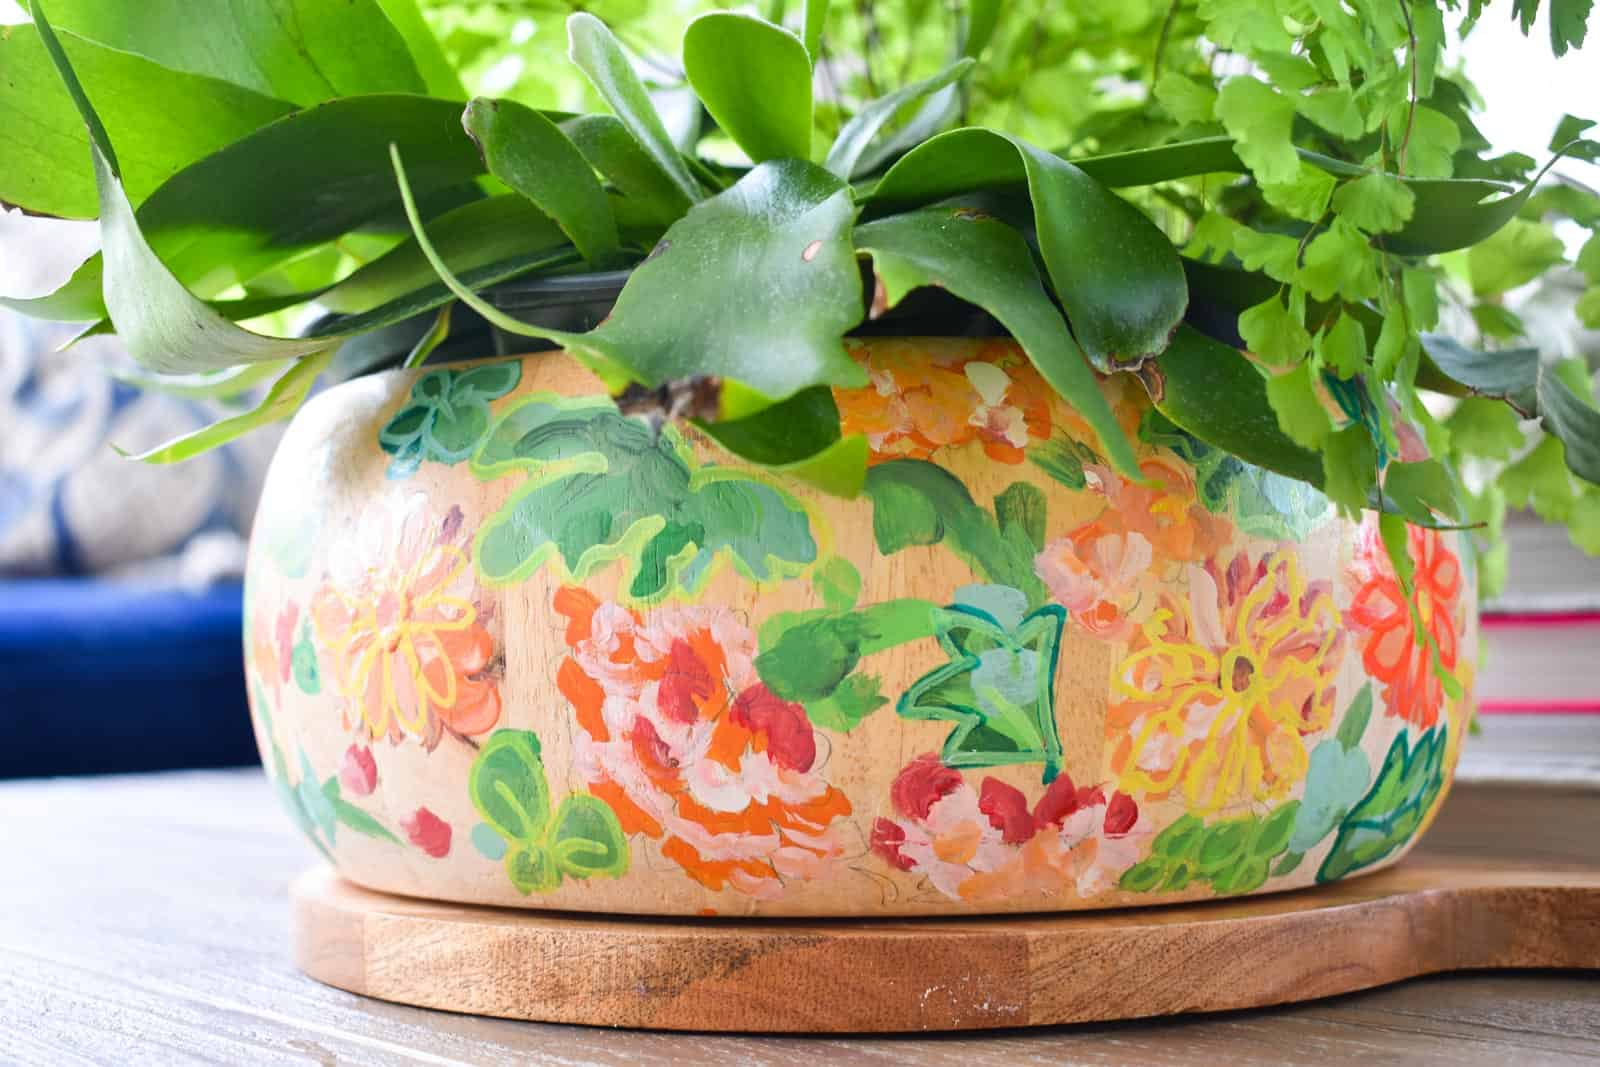 detail of planter with paint pen outlines